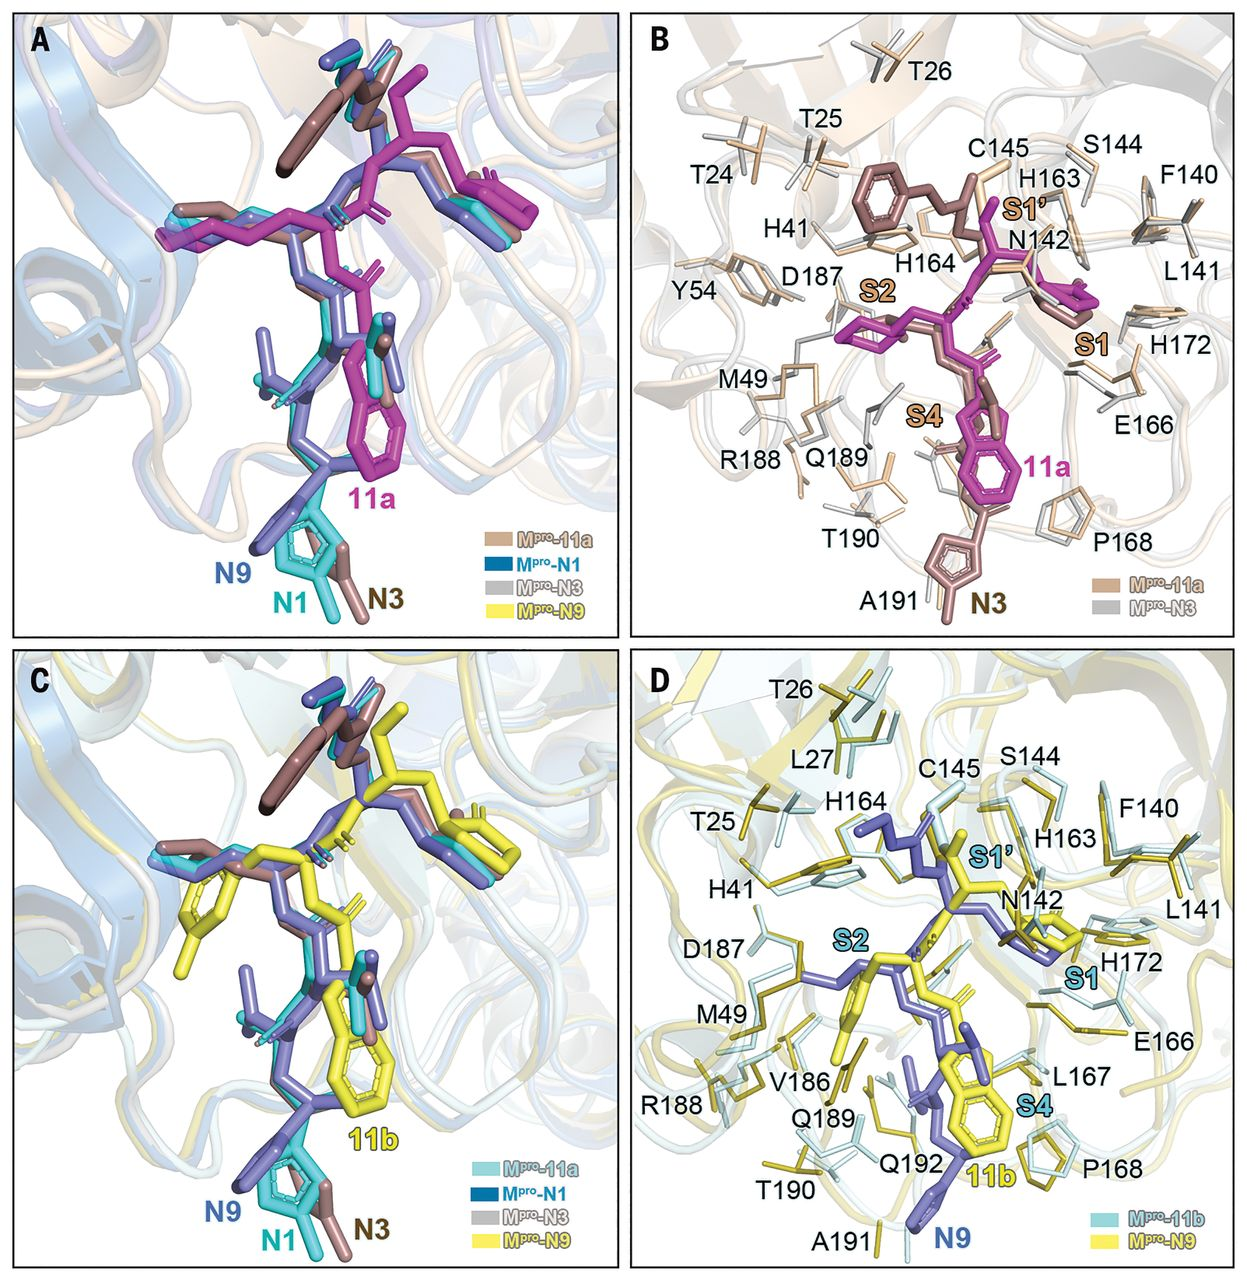 Structure-based design of antiviral drug candidates targeting the SARS-CoV-2 main protease - F4.jpg